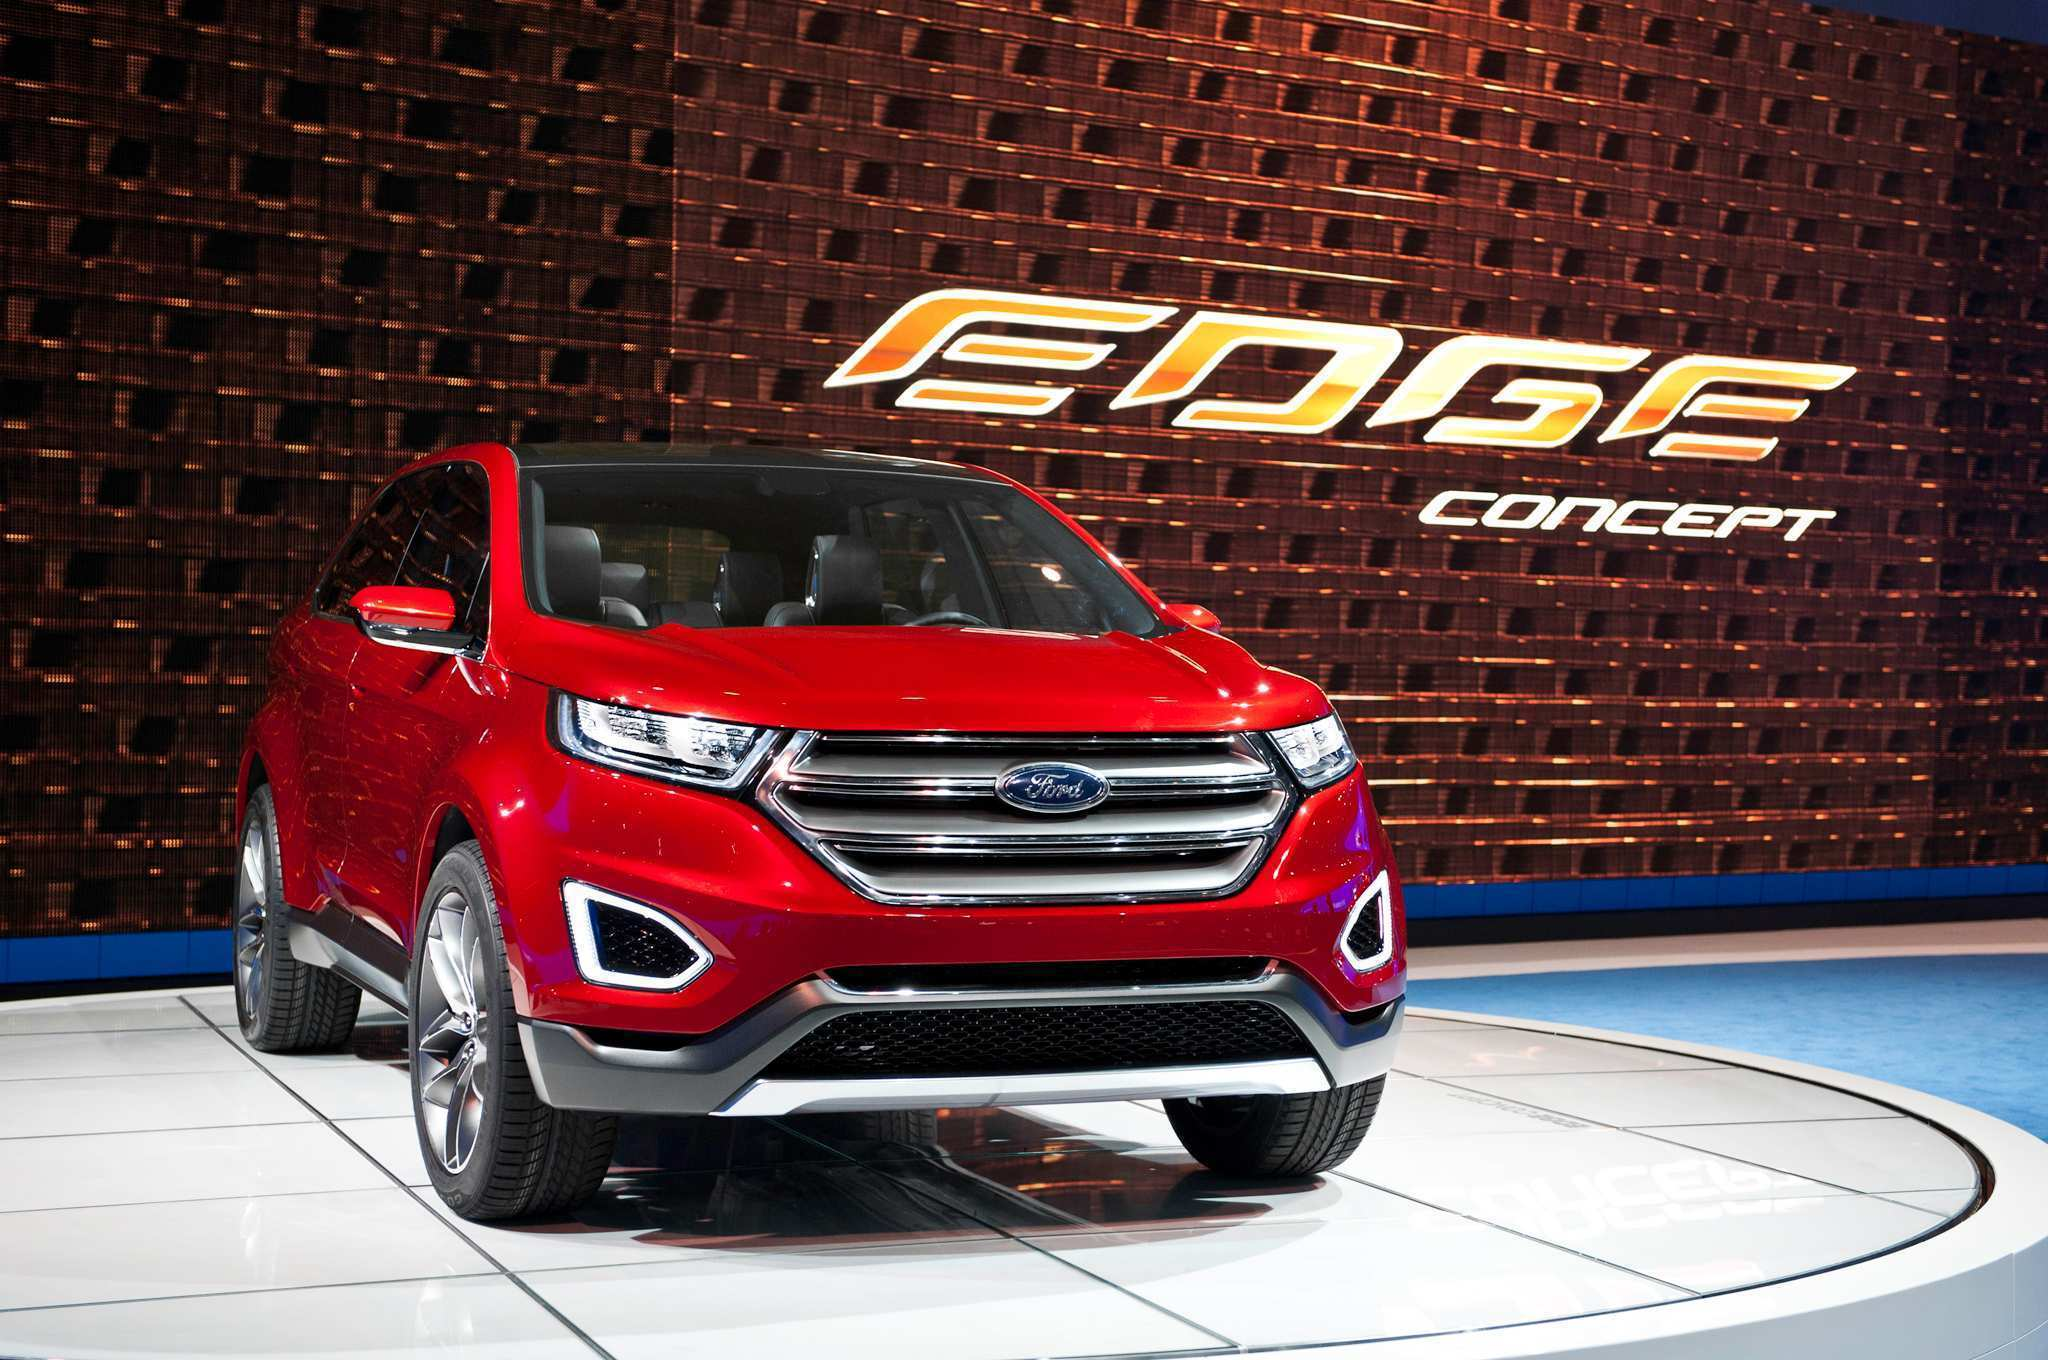 32 Best Ford Edge New Design Research New